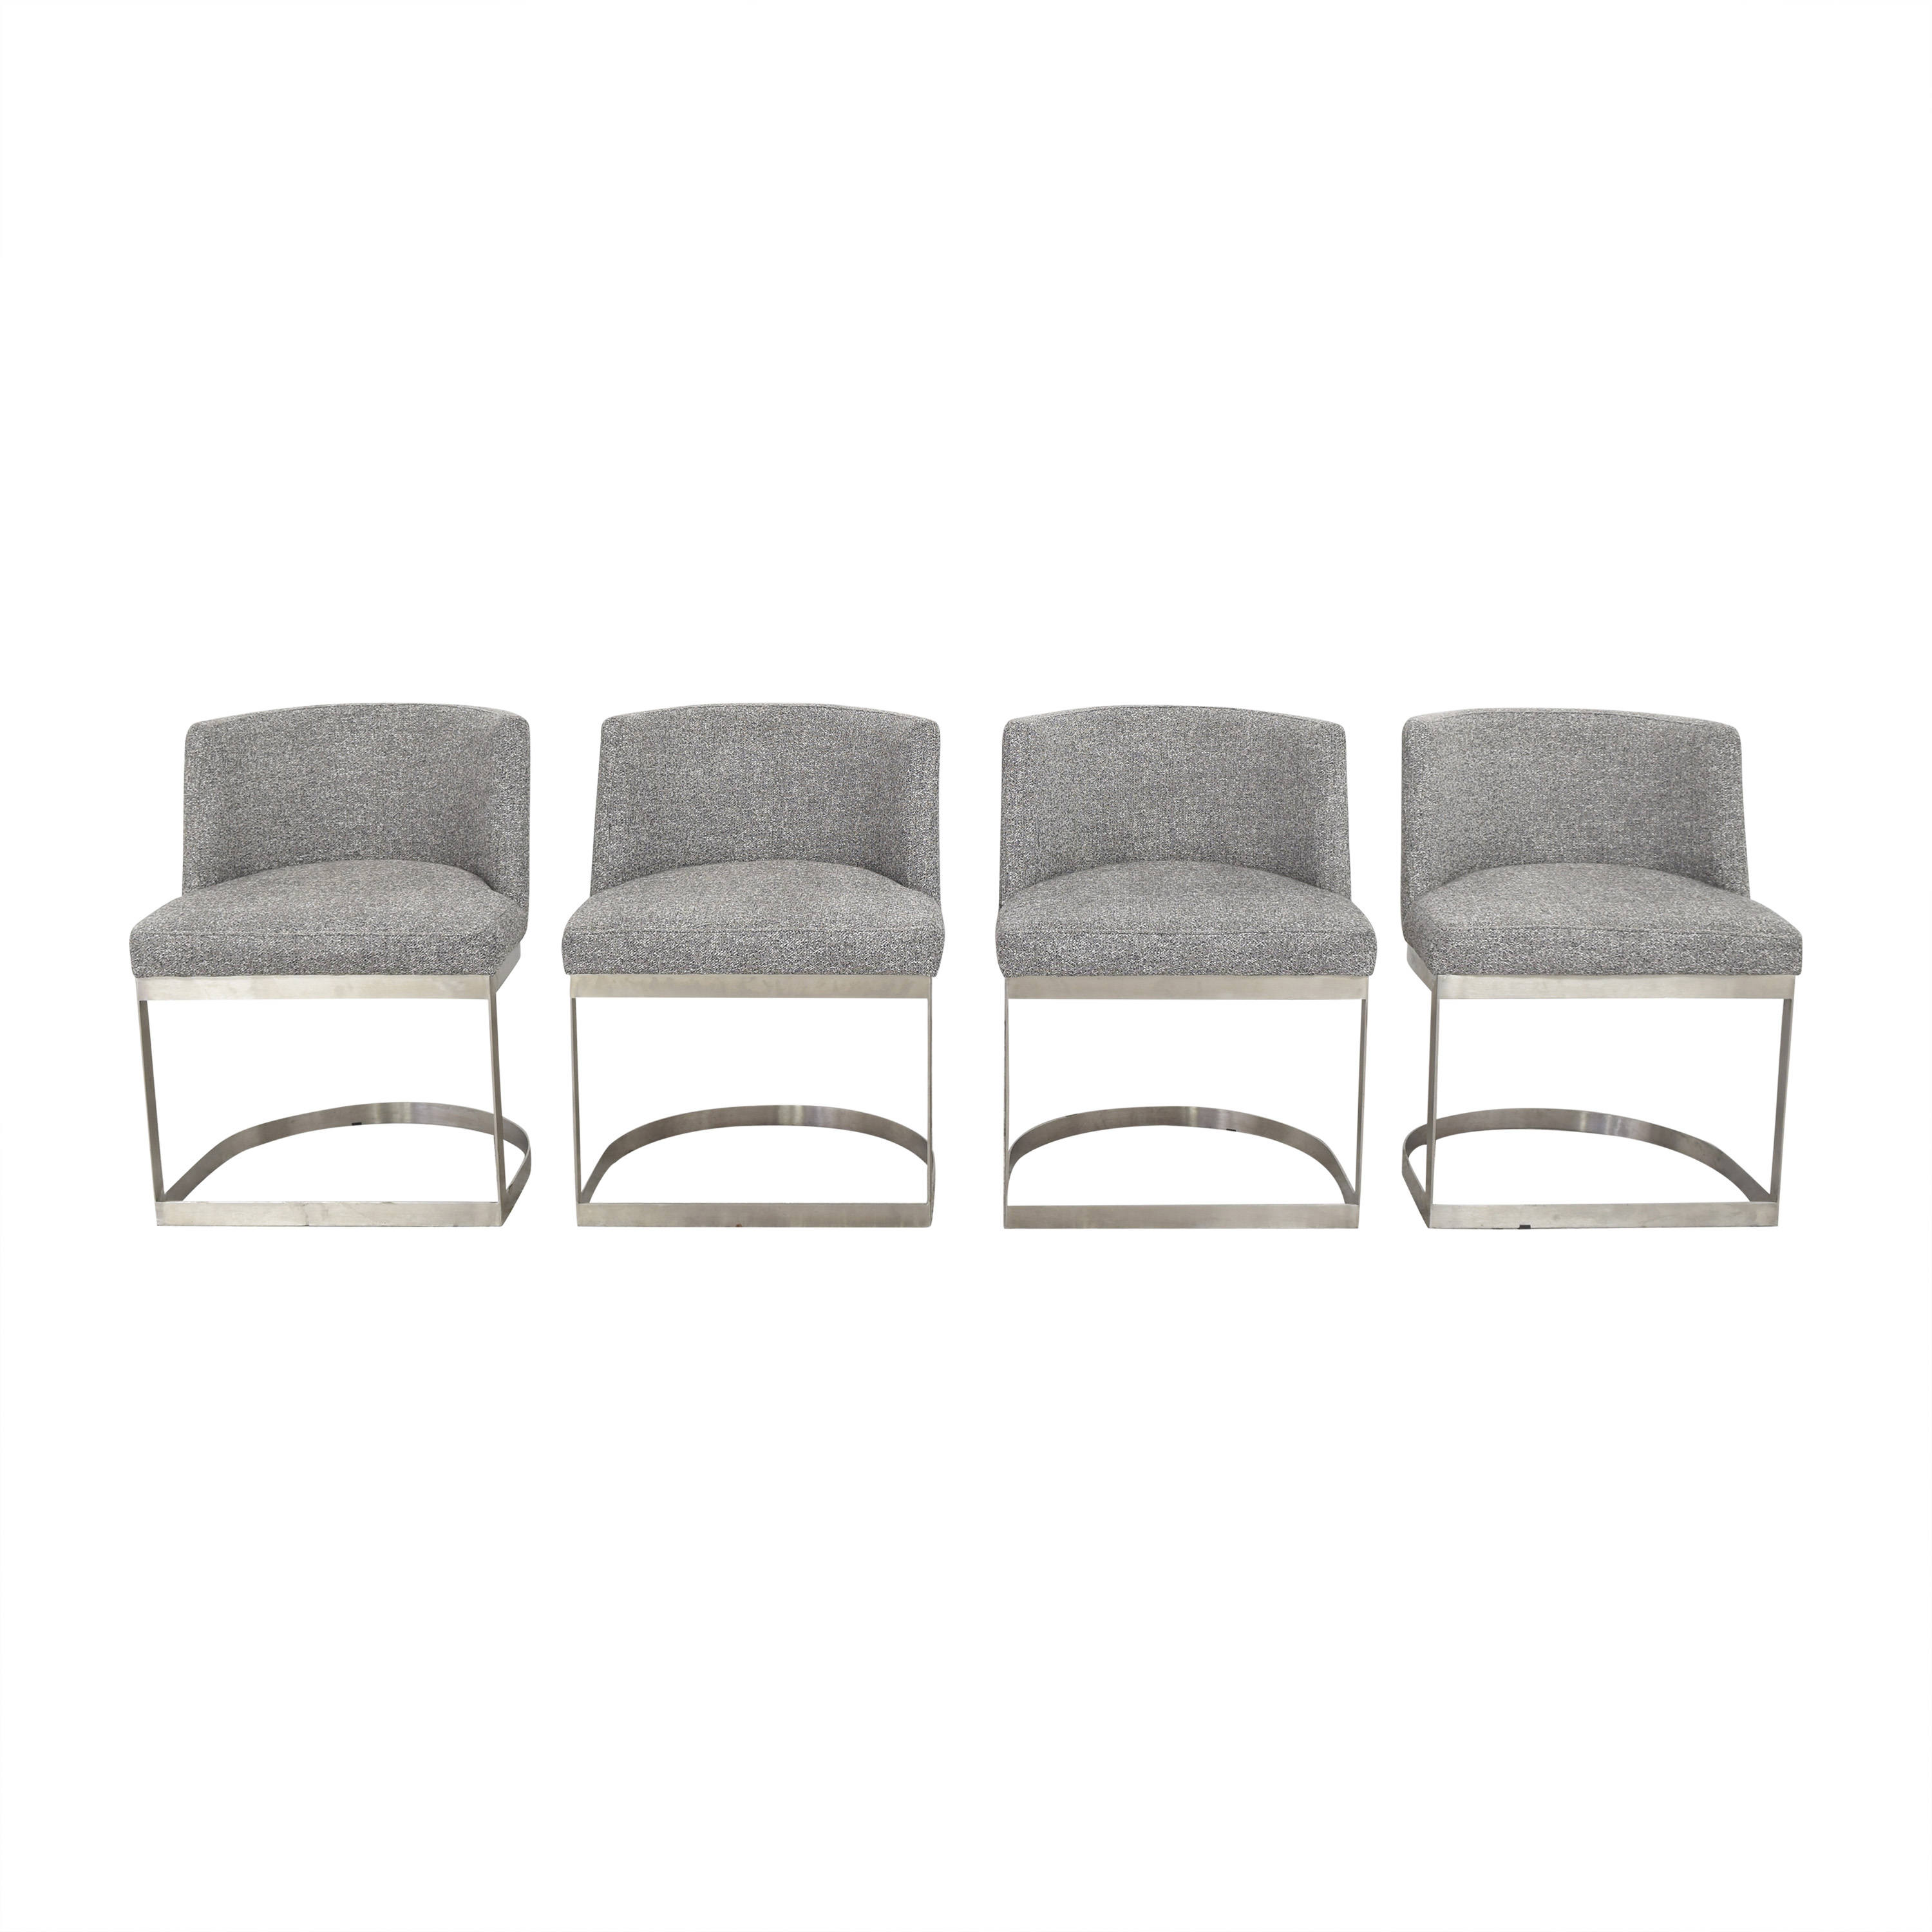 Four Hands Ashford Wexler Dining Chairs / Chairs